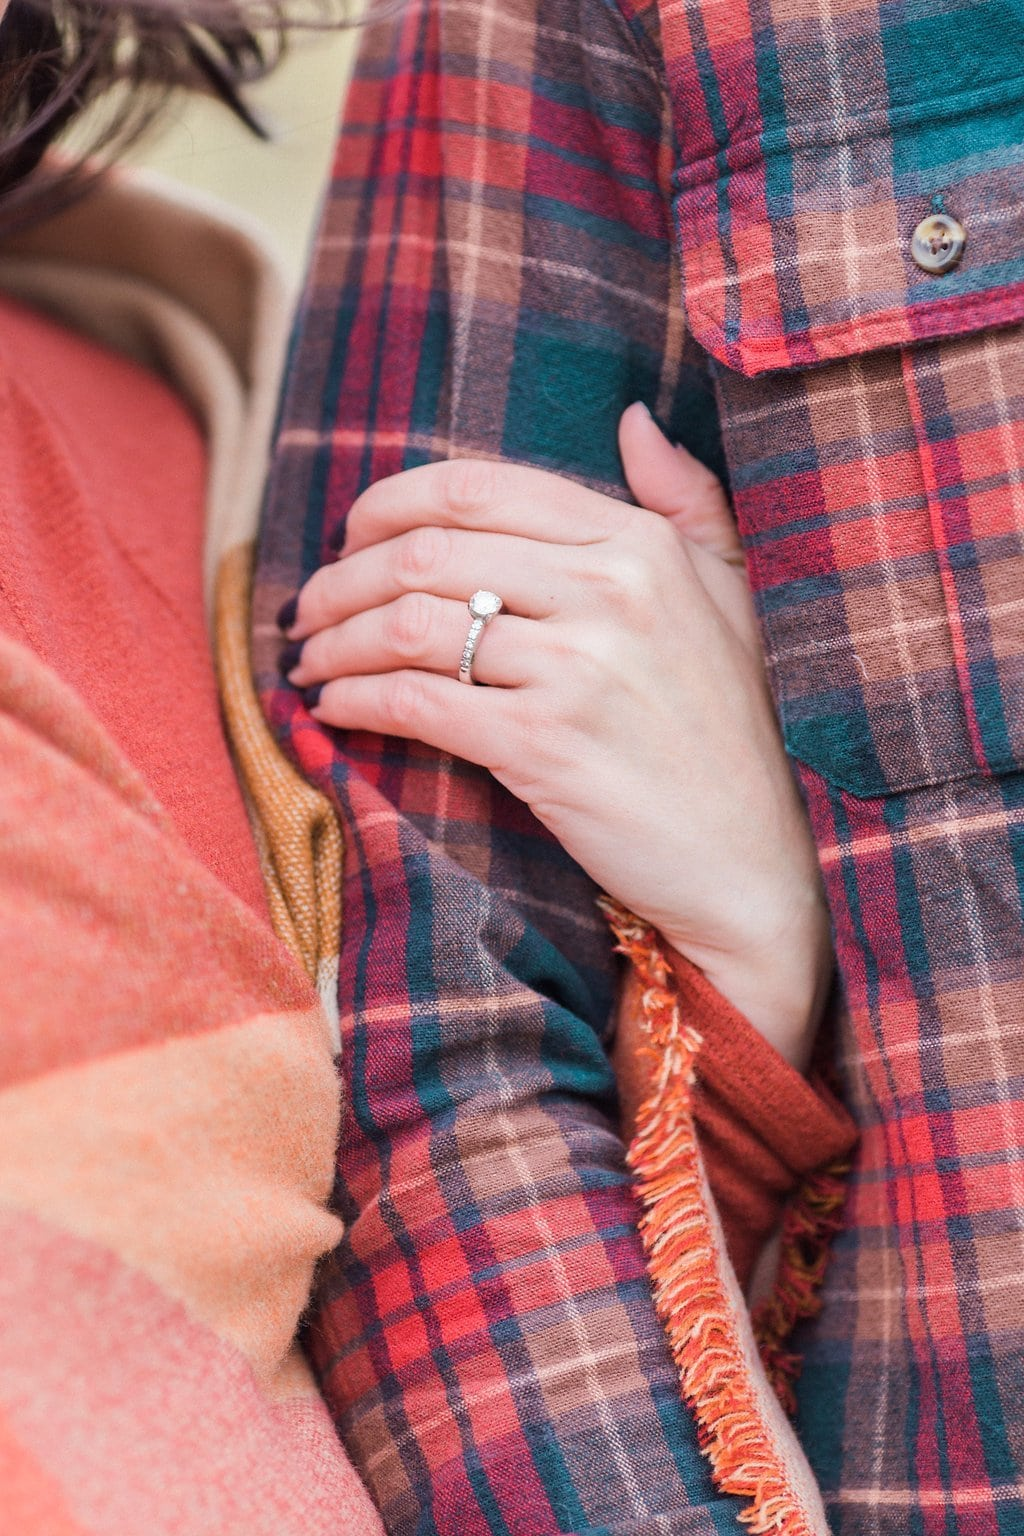 Woman holding man's arm showing off her engagement ring